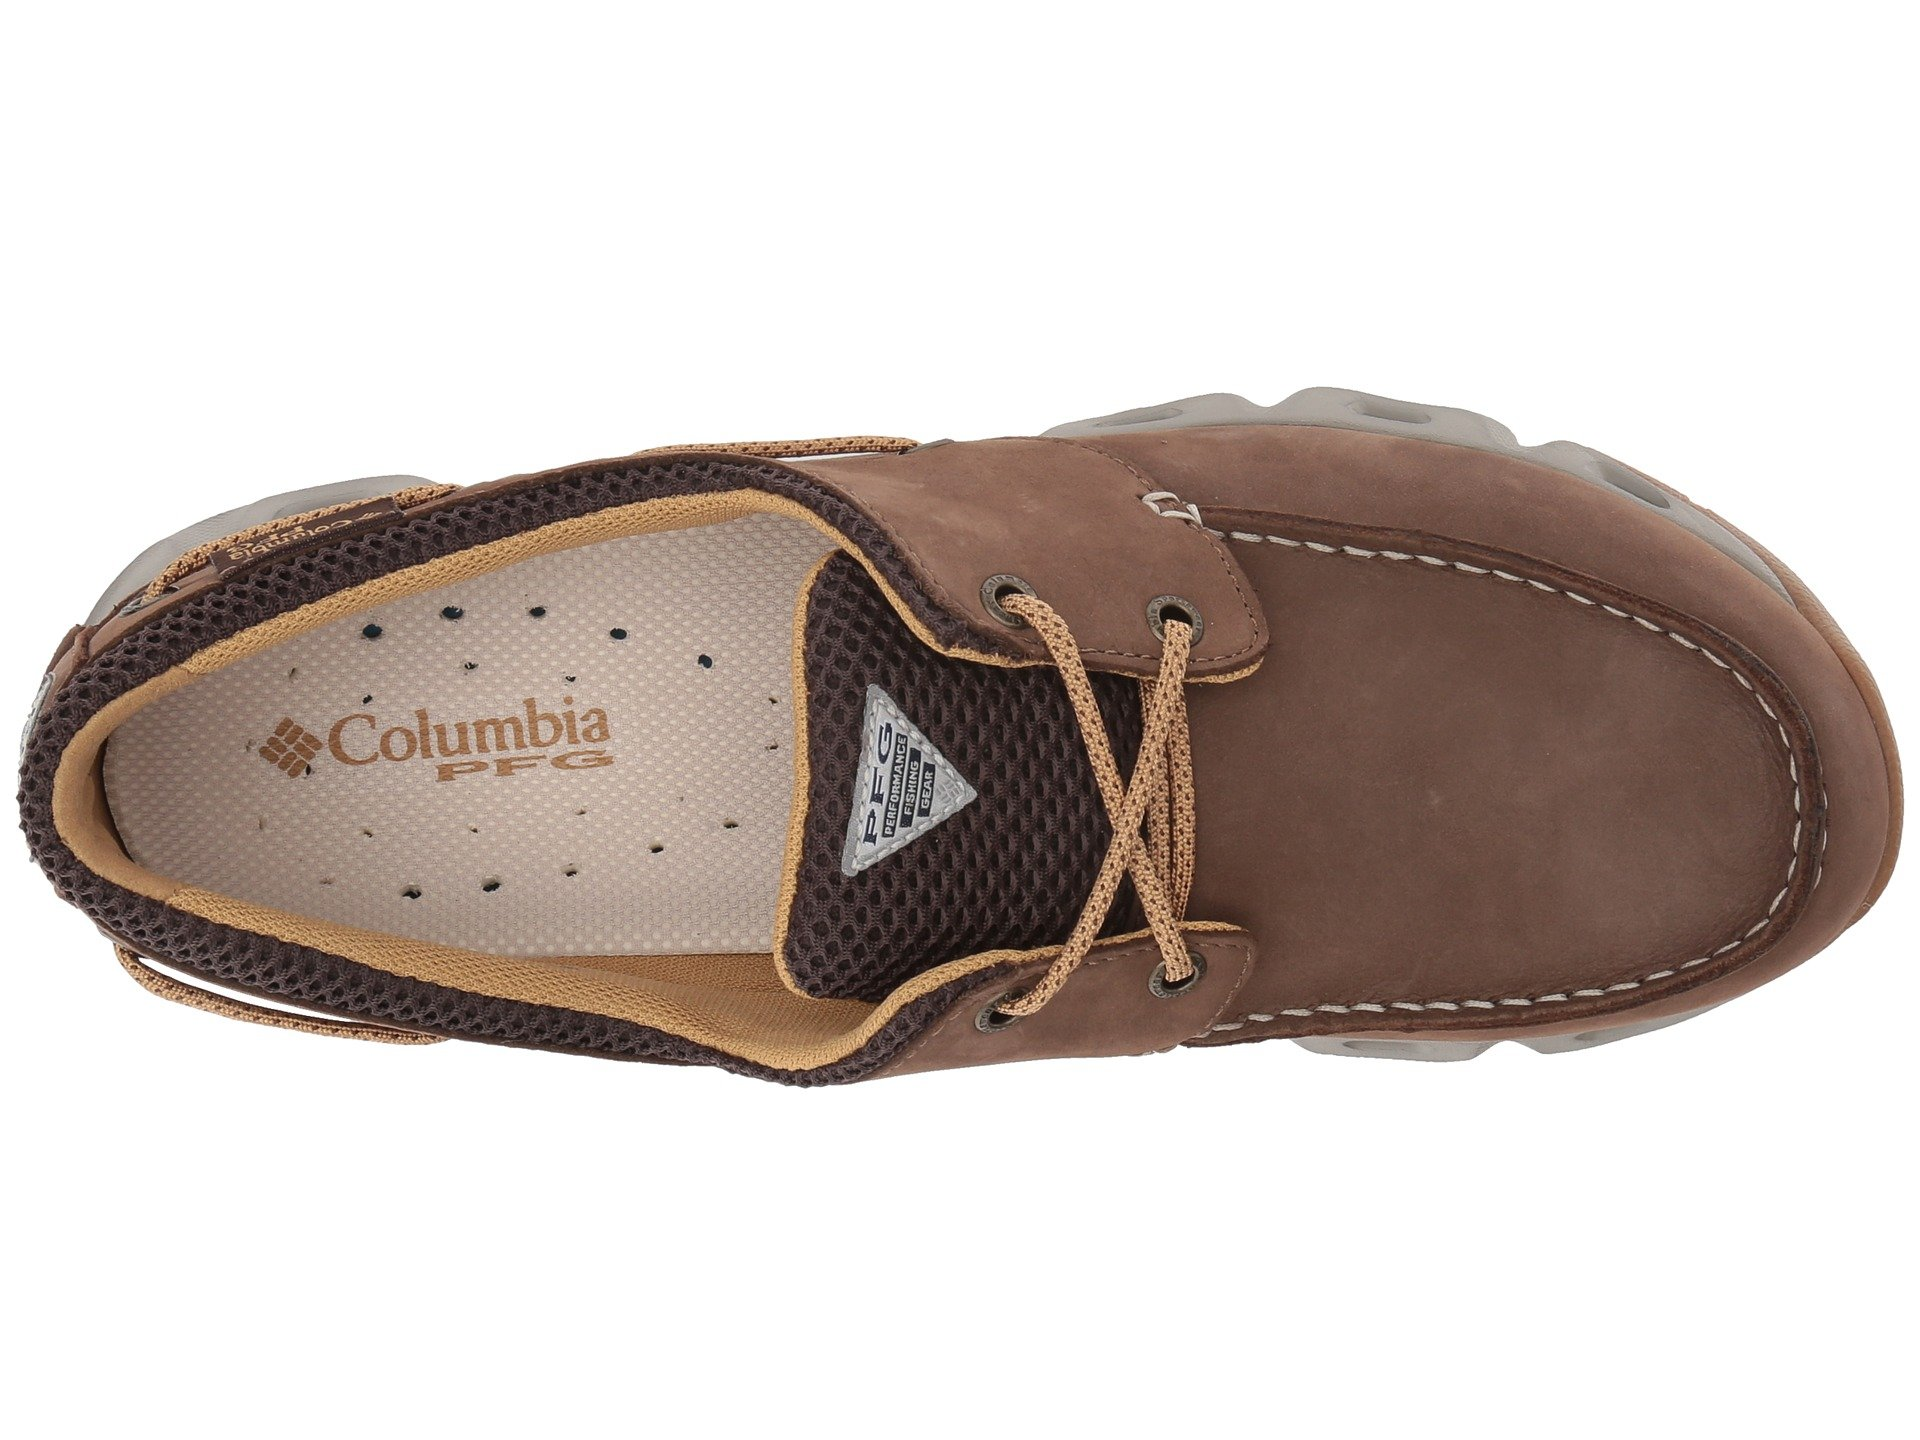 Iii Pfg Columbia curry Boatdrainer Cordovan pqEywrE5B